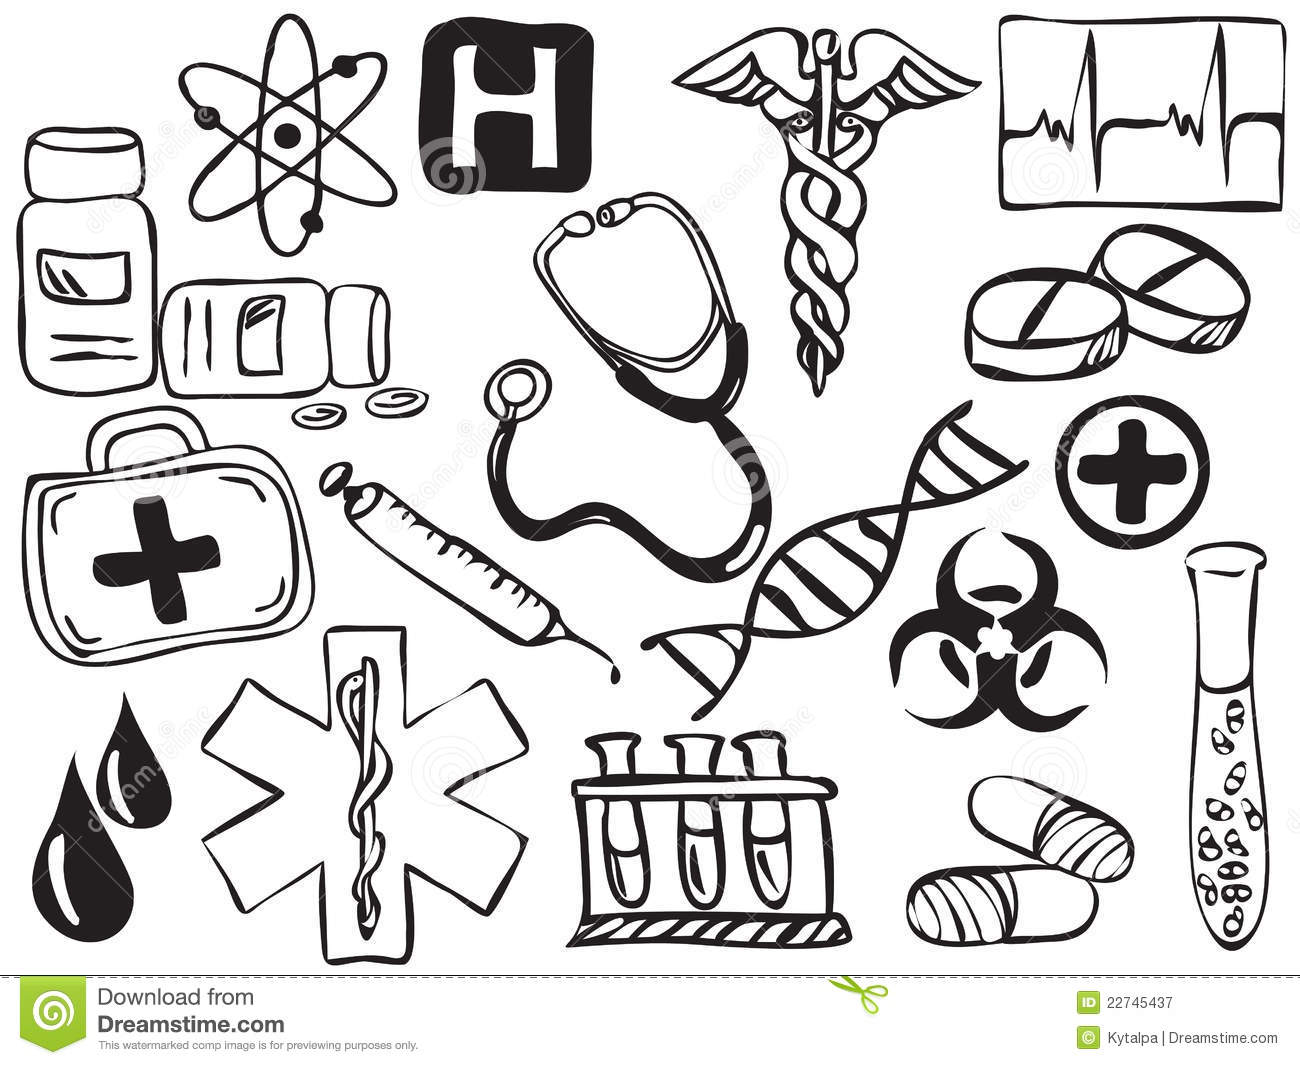 Health First Aid Coloring Pages Coloring Pages